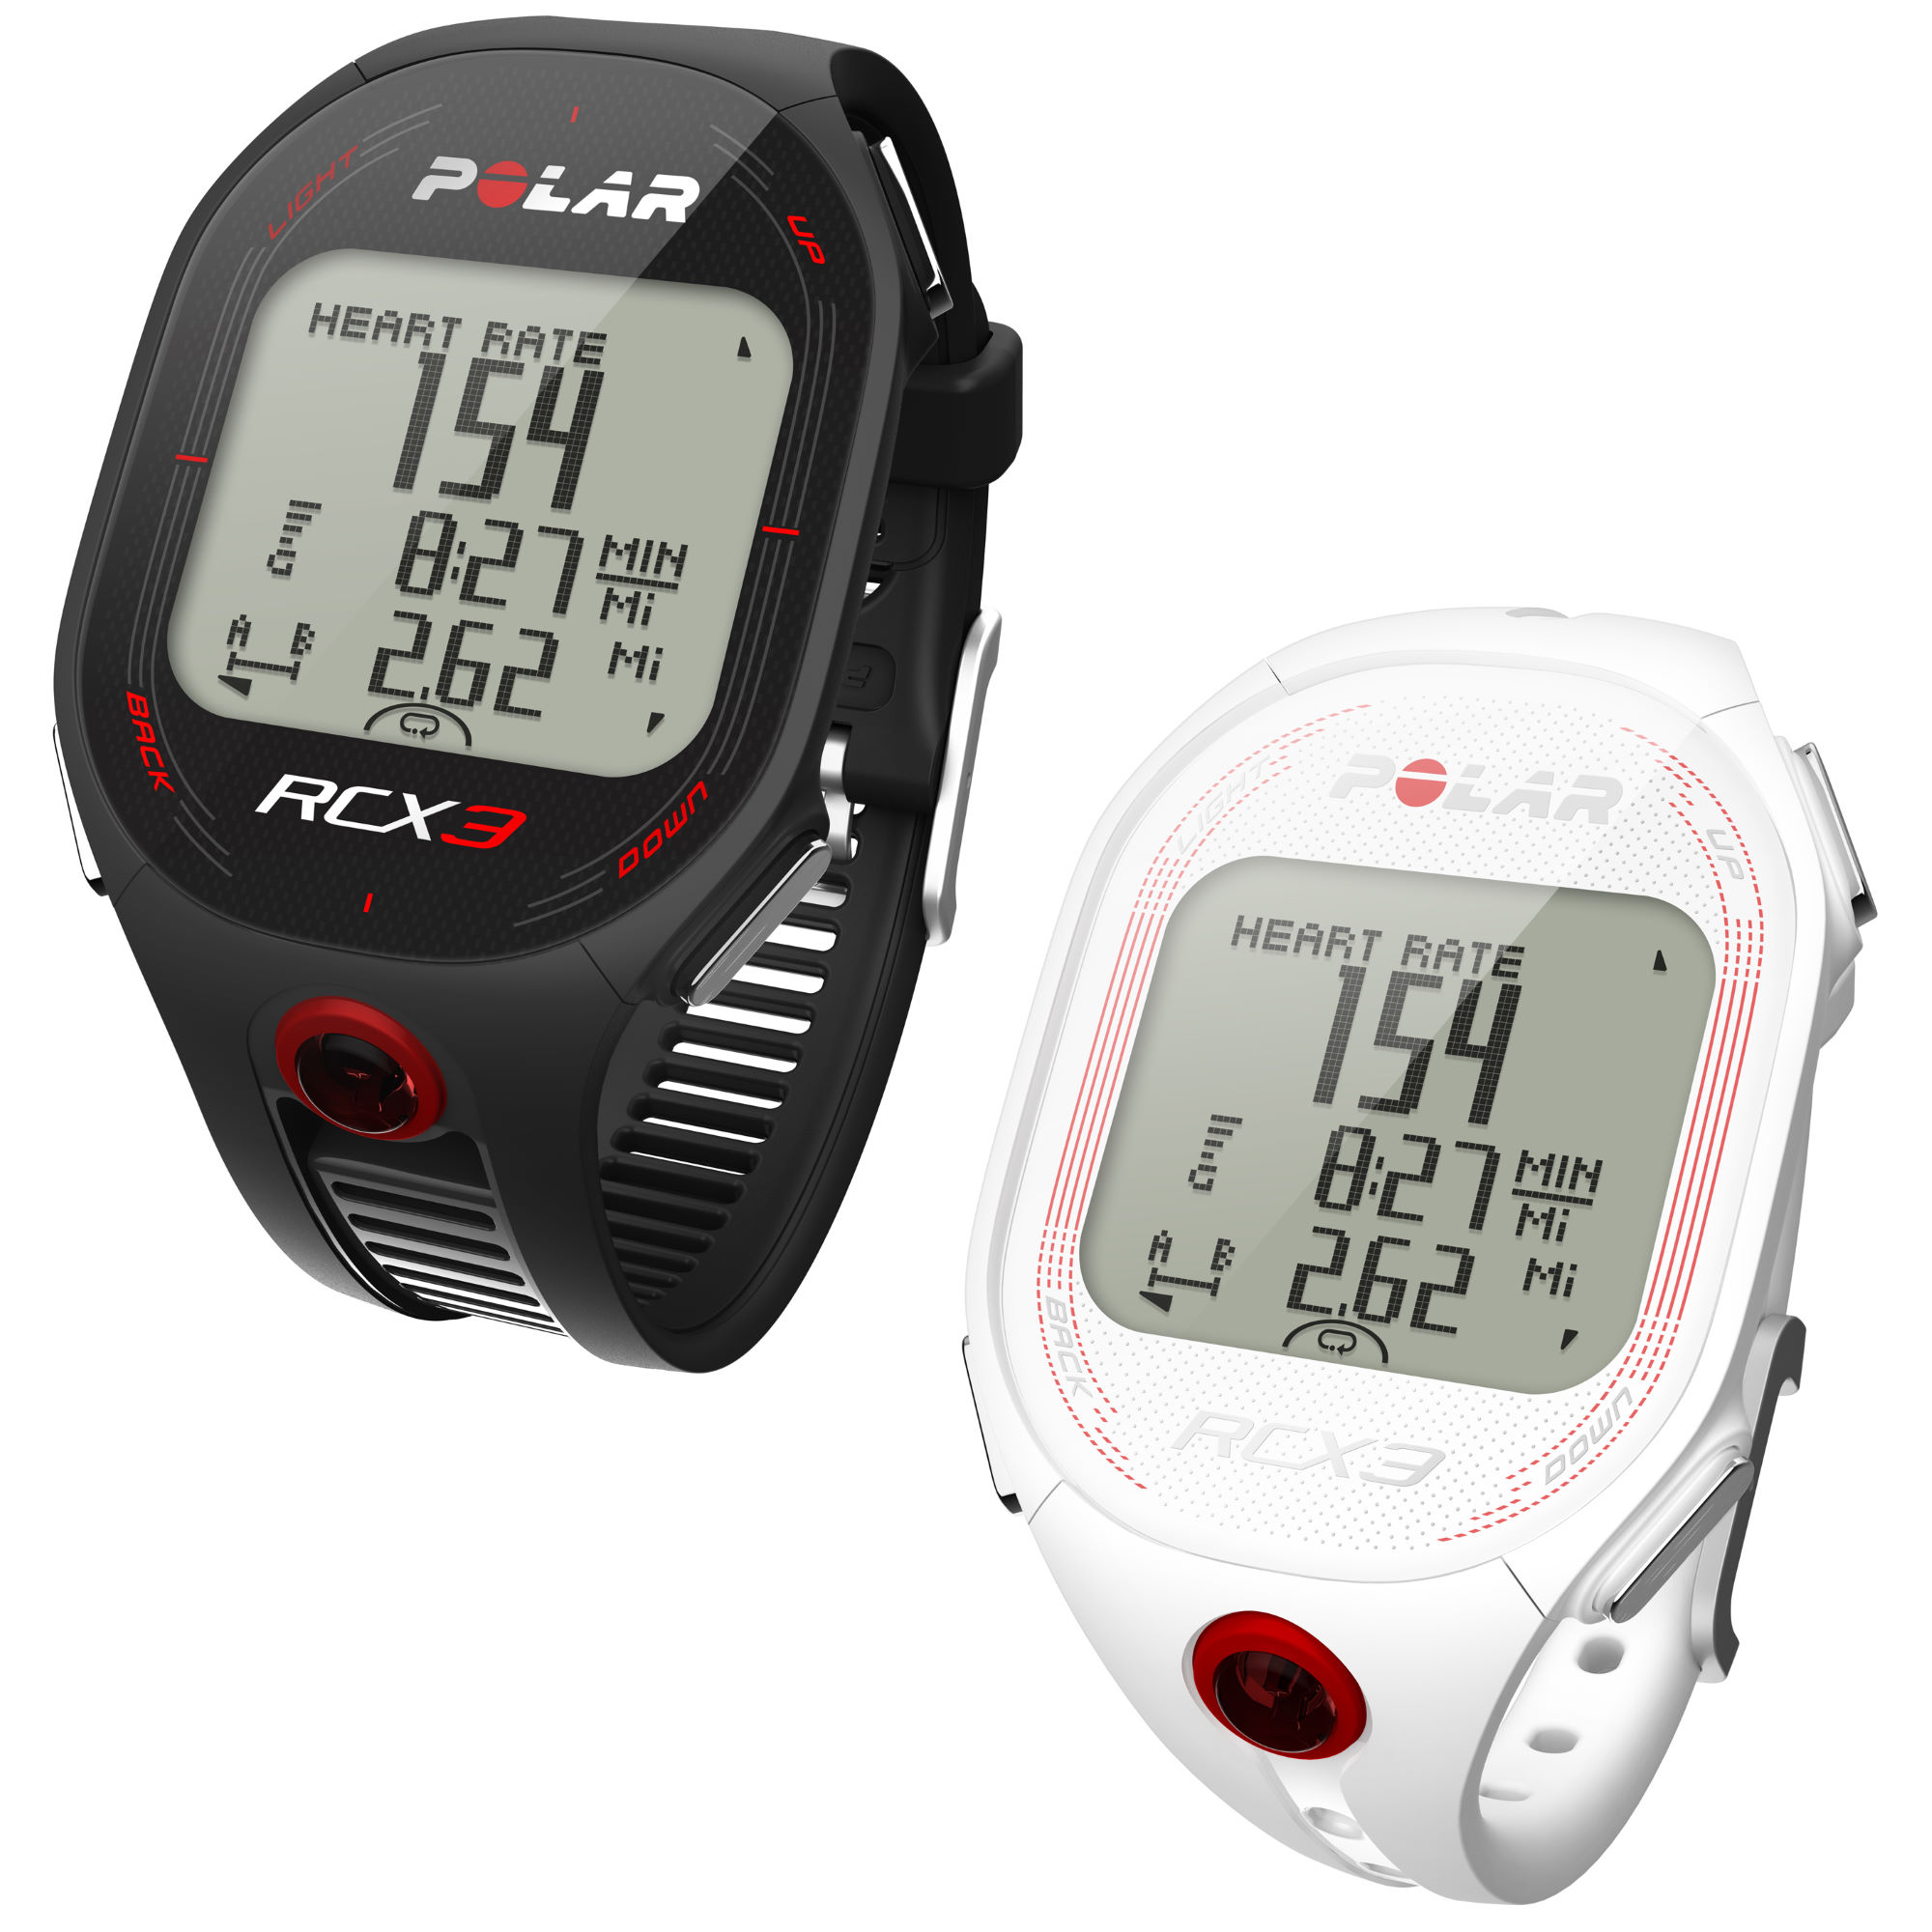 polar rcx3 gps sportuhr mit pulsmesser gps. Black Bedroom Furniture Sets. Home Design Ideas